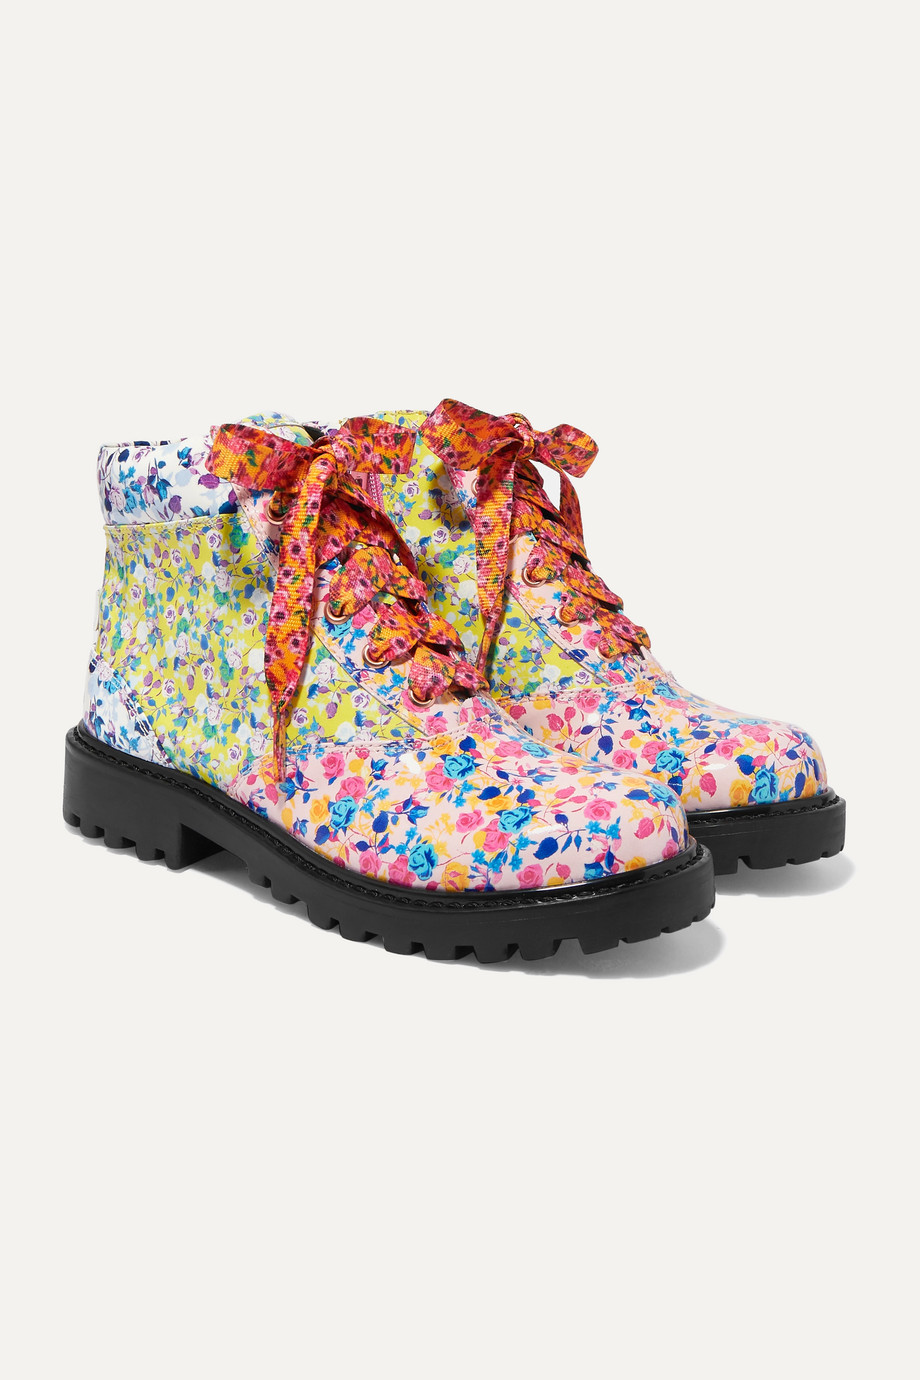 Sophia Webster Kids Size 21 - 34 Tia paneled floral-print patent-leather ankle boots